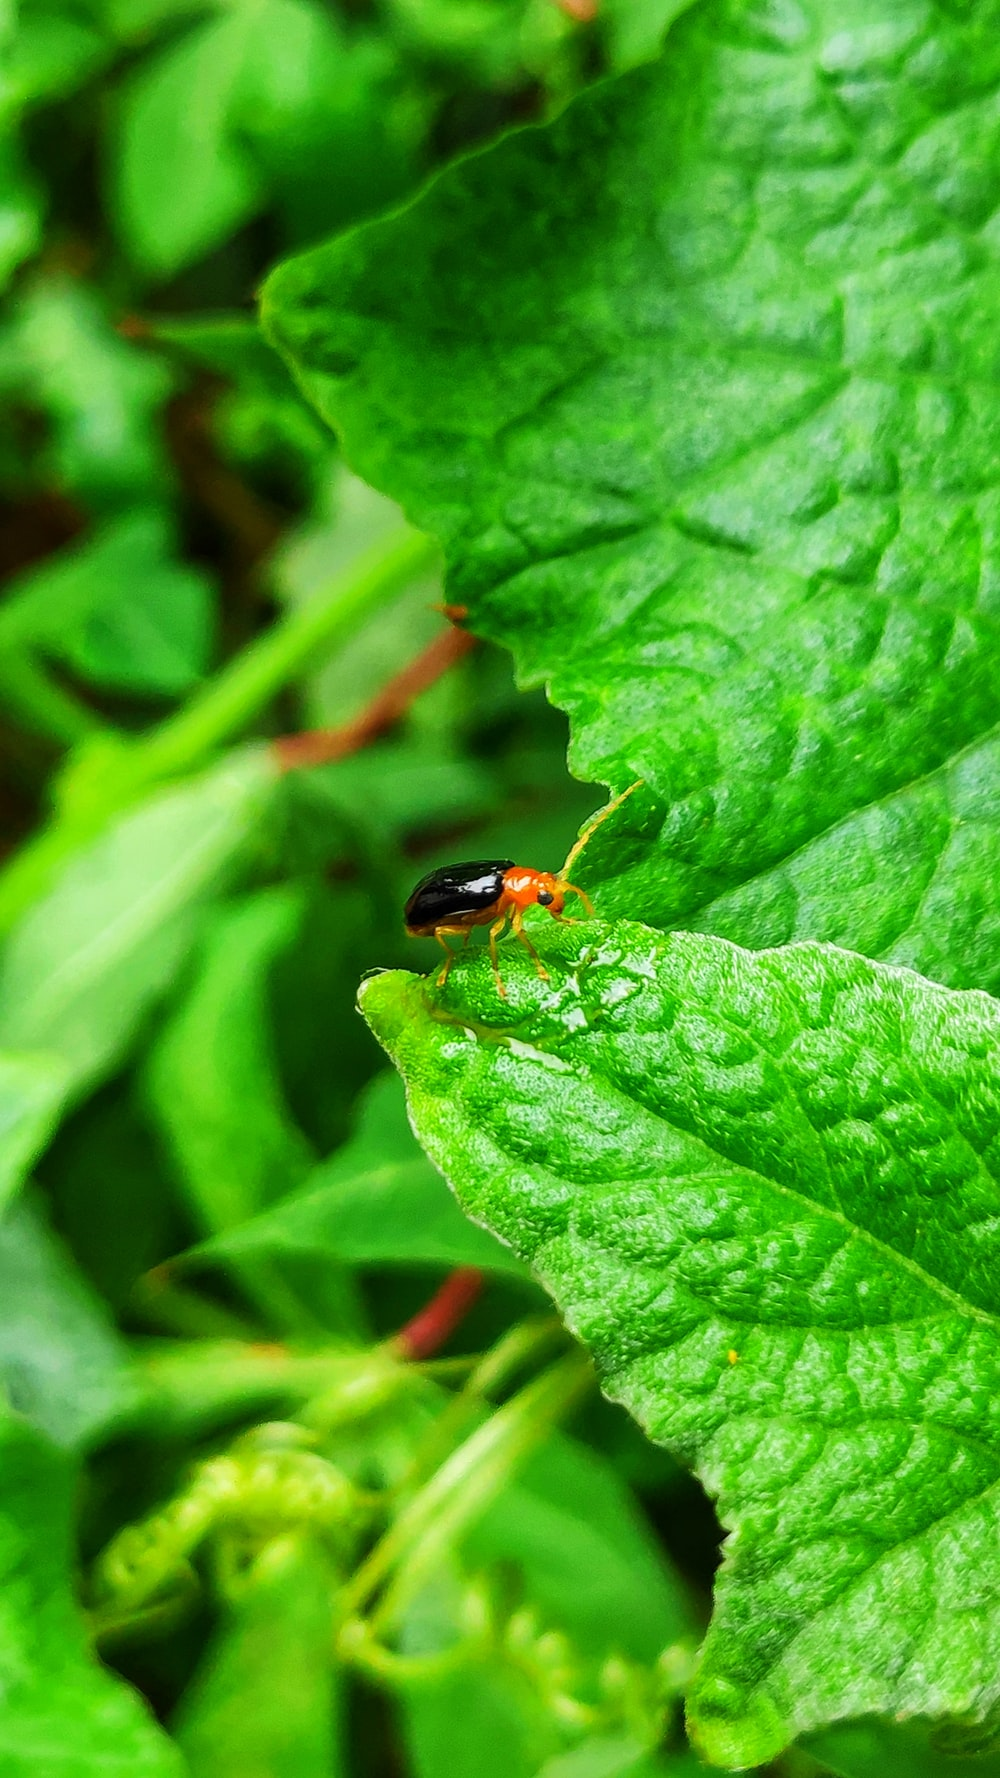 macro photography of black and brown bug on green plant